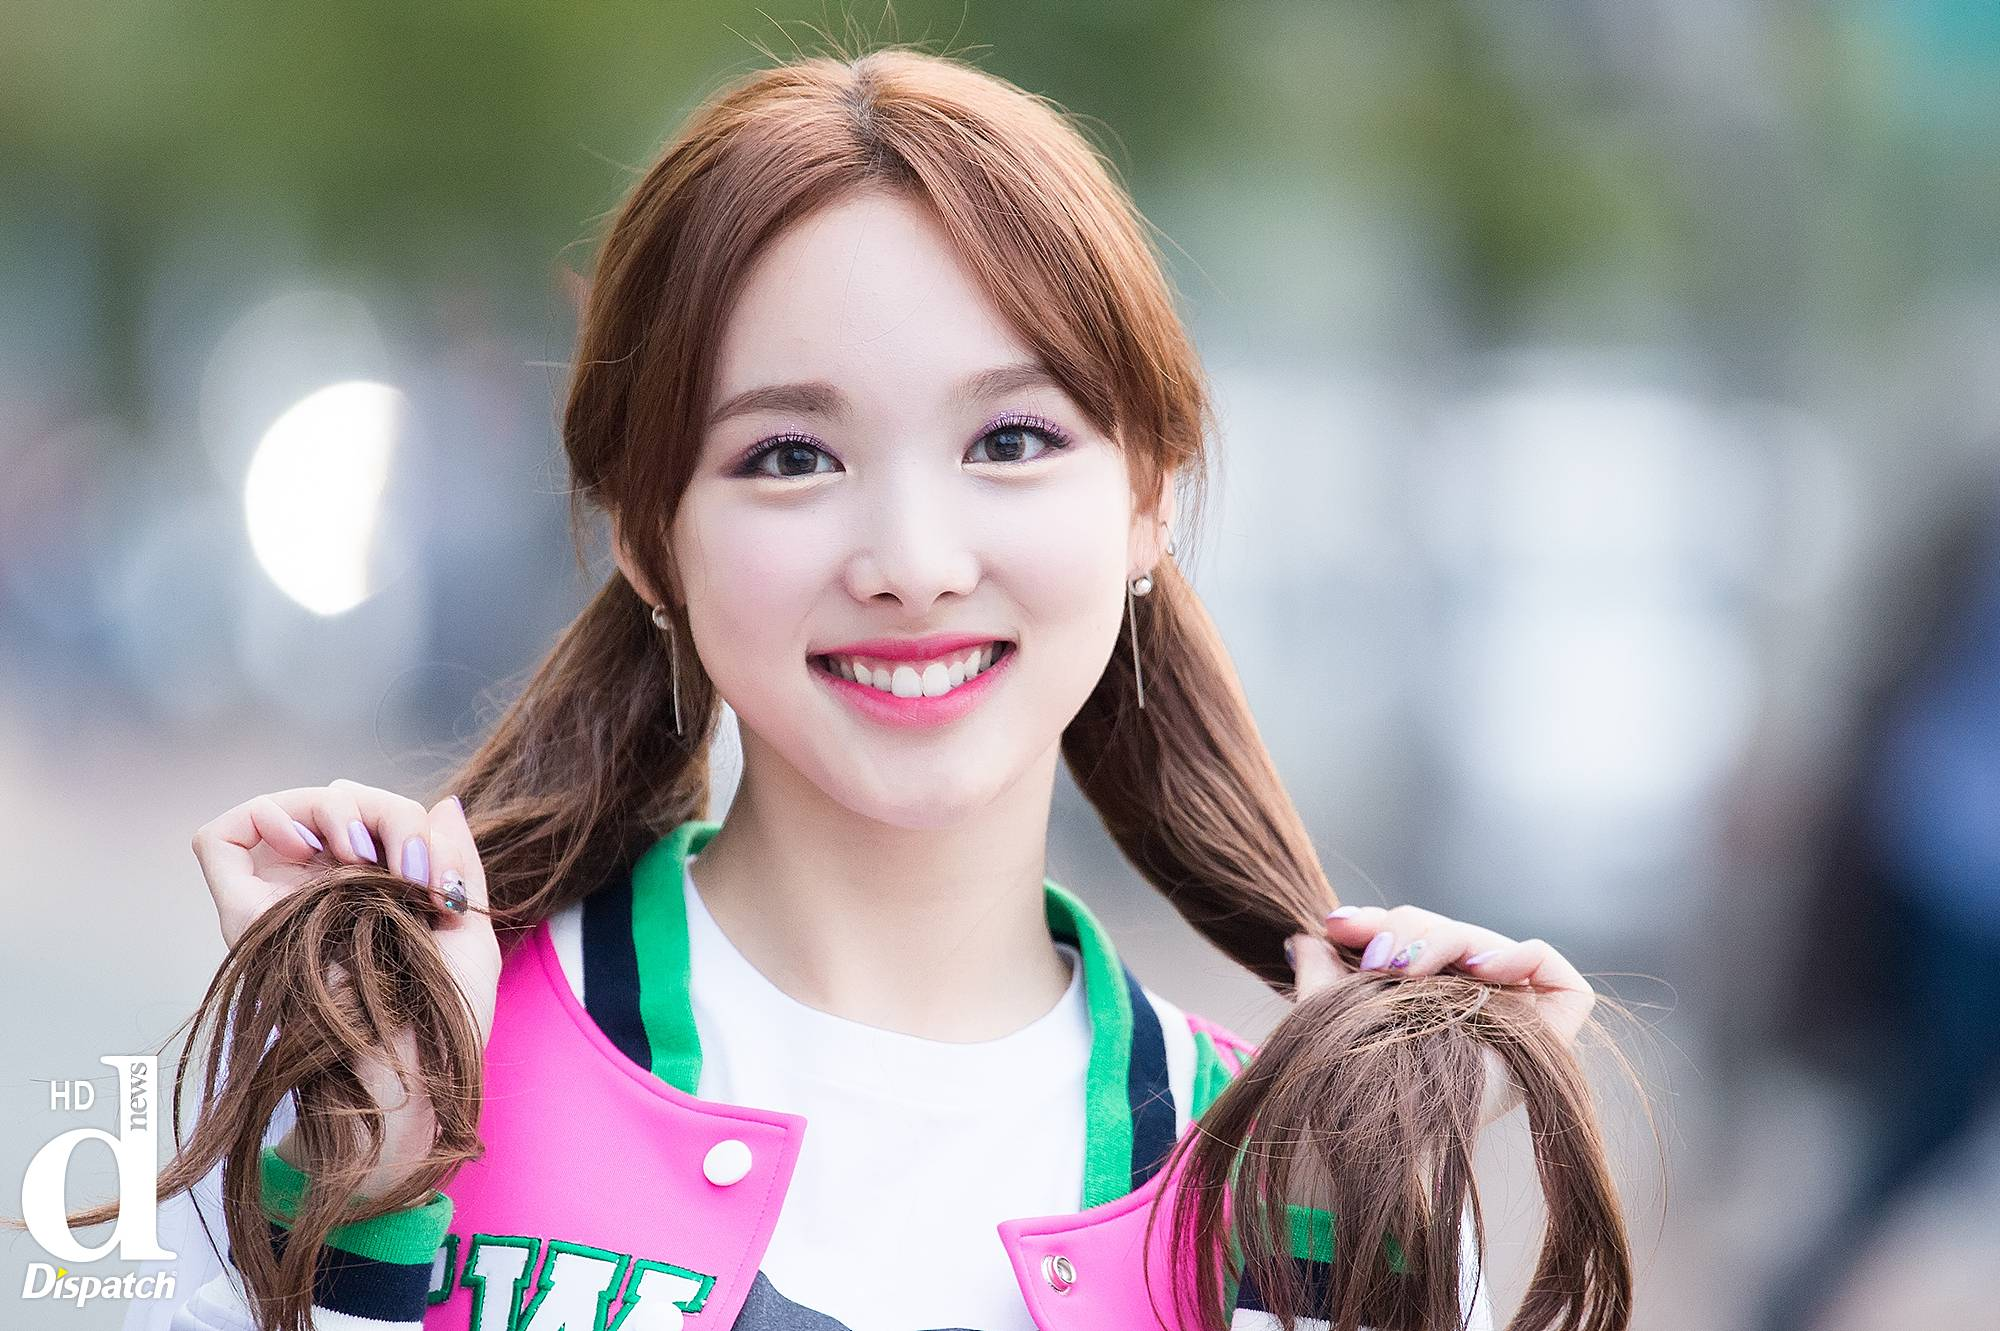 Nayeons Signature Adorable Smile Has Caused Fans To Give Her An Adorable Nickname